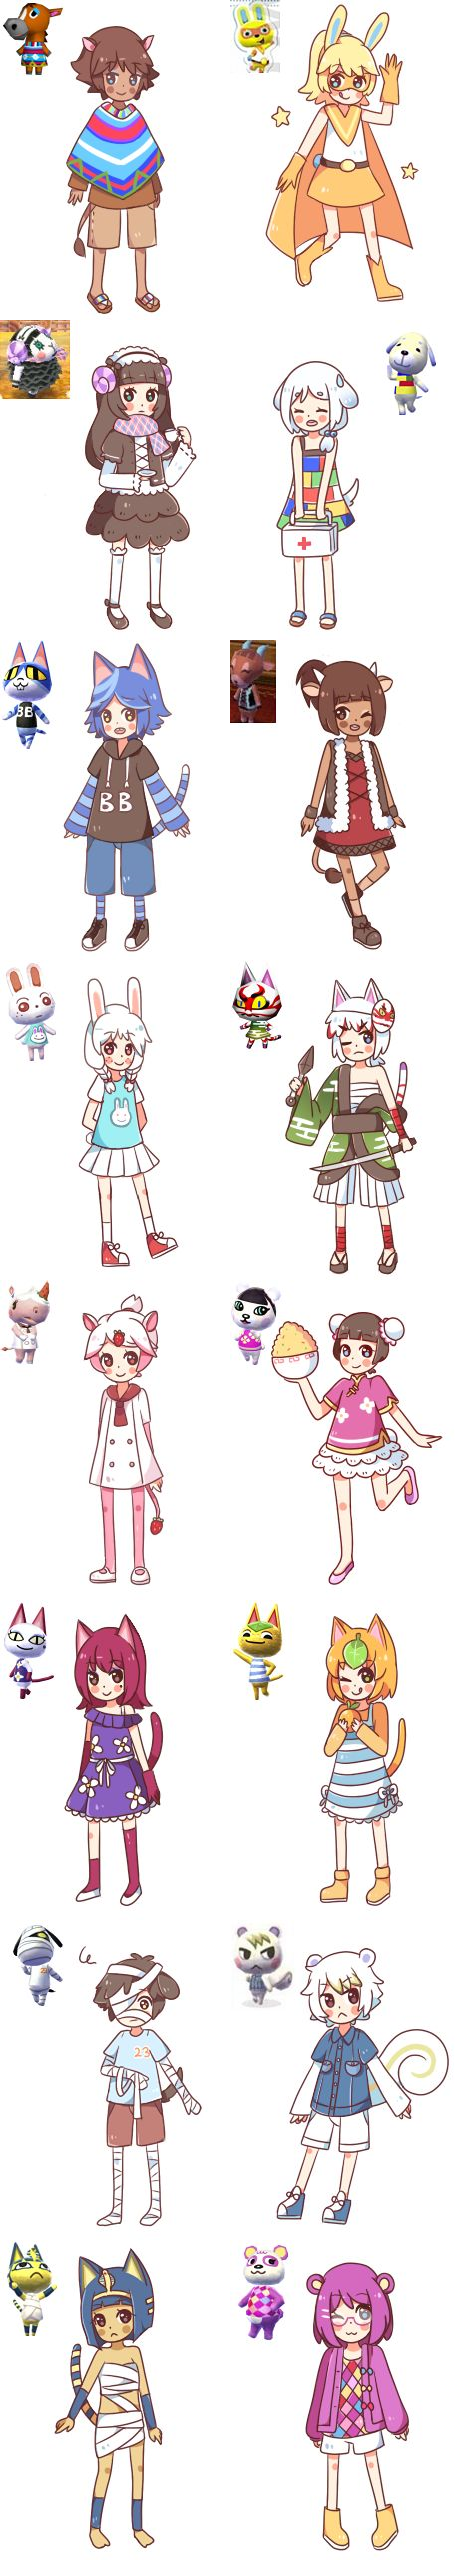 Human Crossing One Of The Best Designs For Human Animal Crossing Characters I Ve Animal Crossing Characters Animal Crossing Villagers Animal Crossing Fan Art